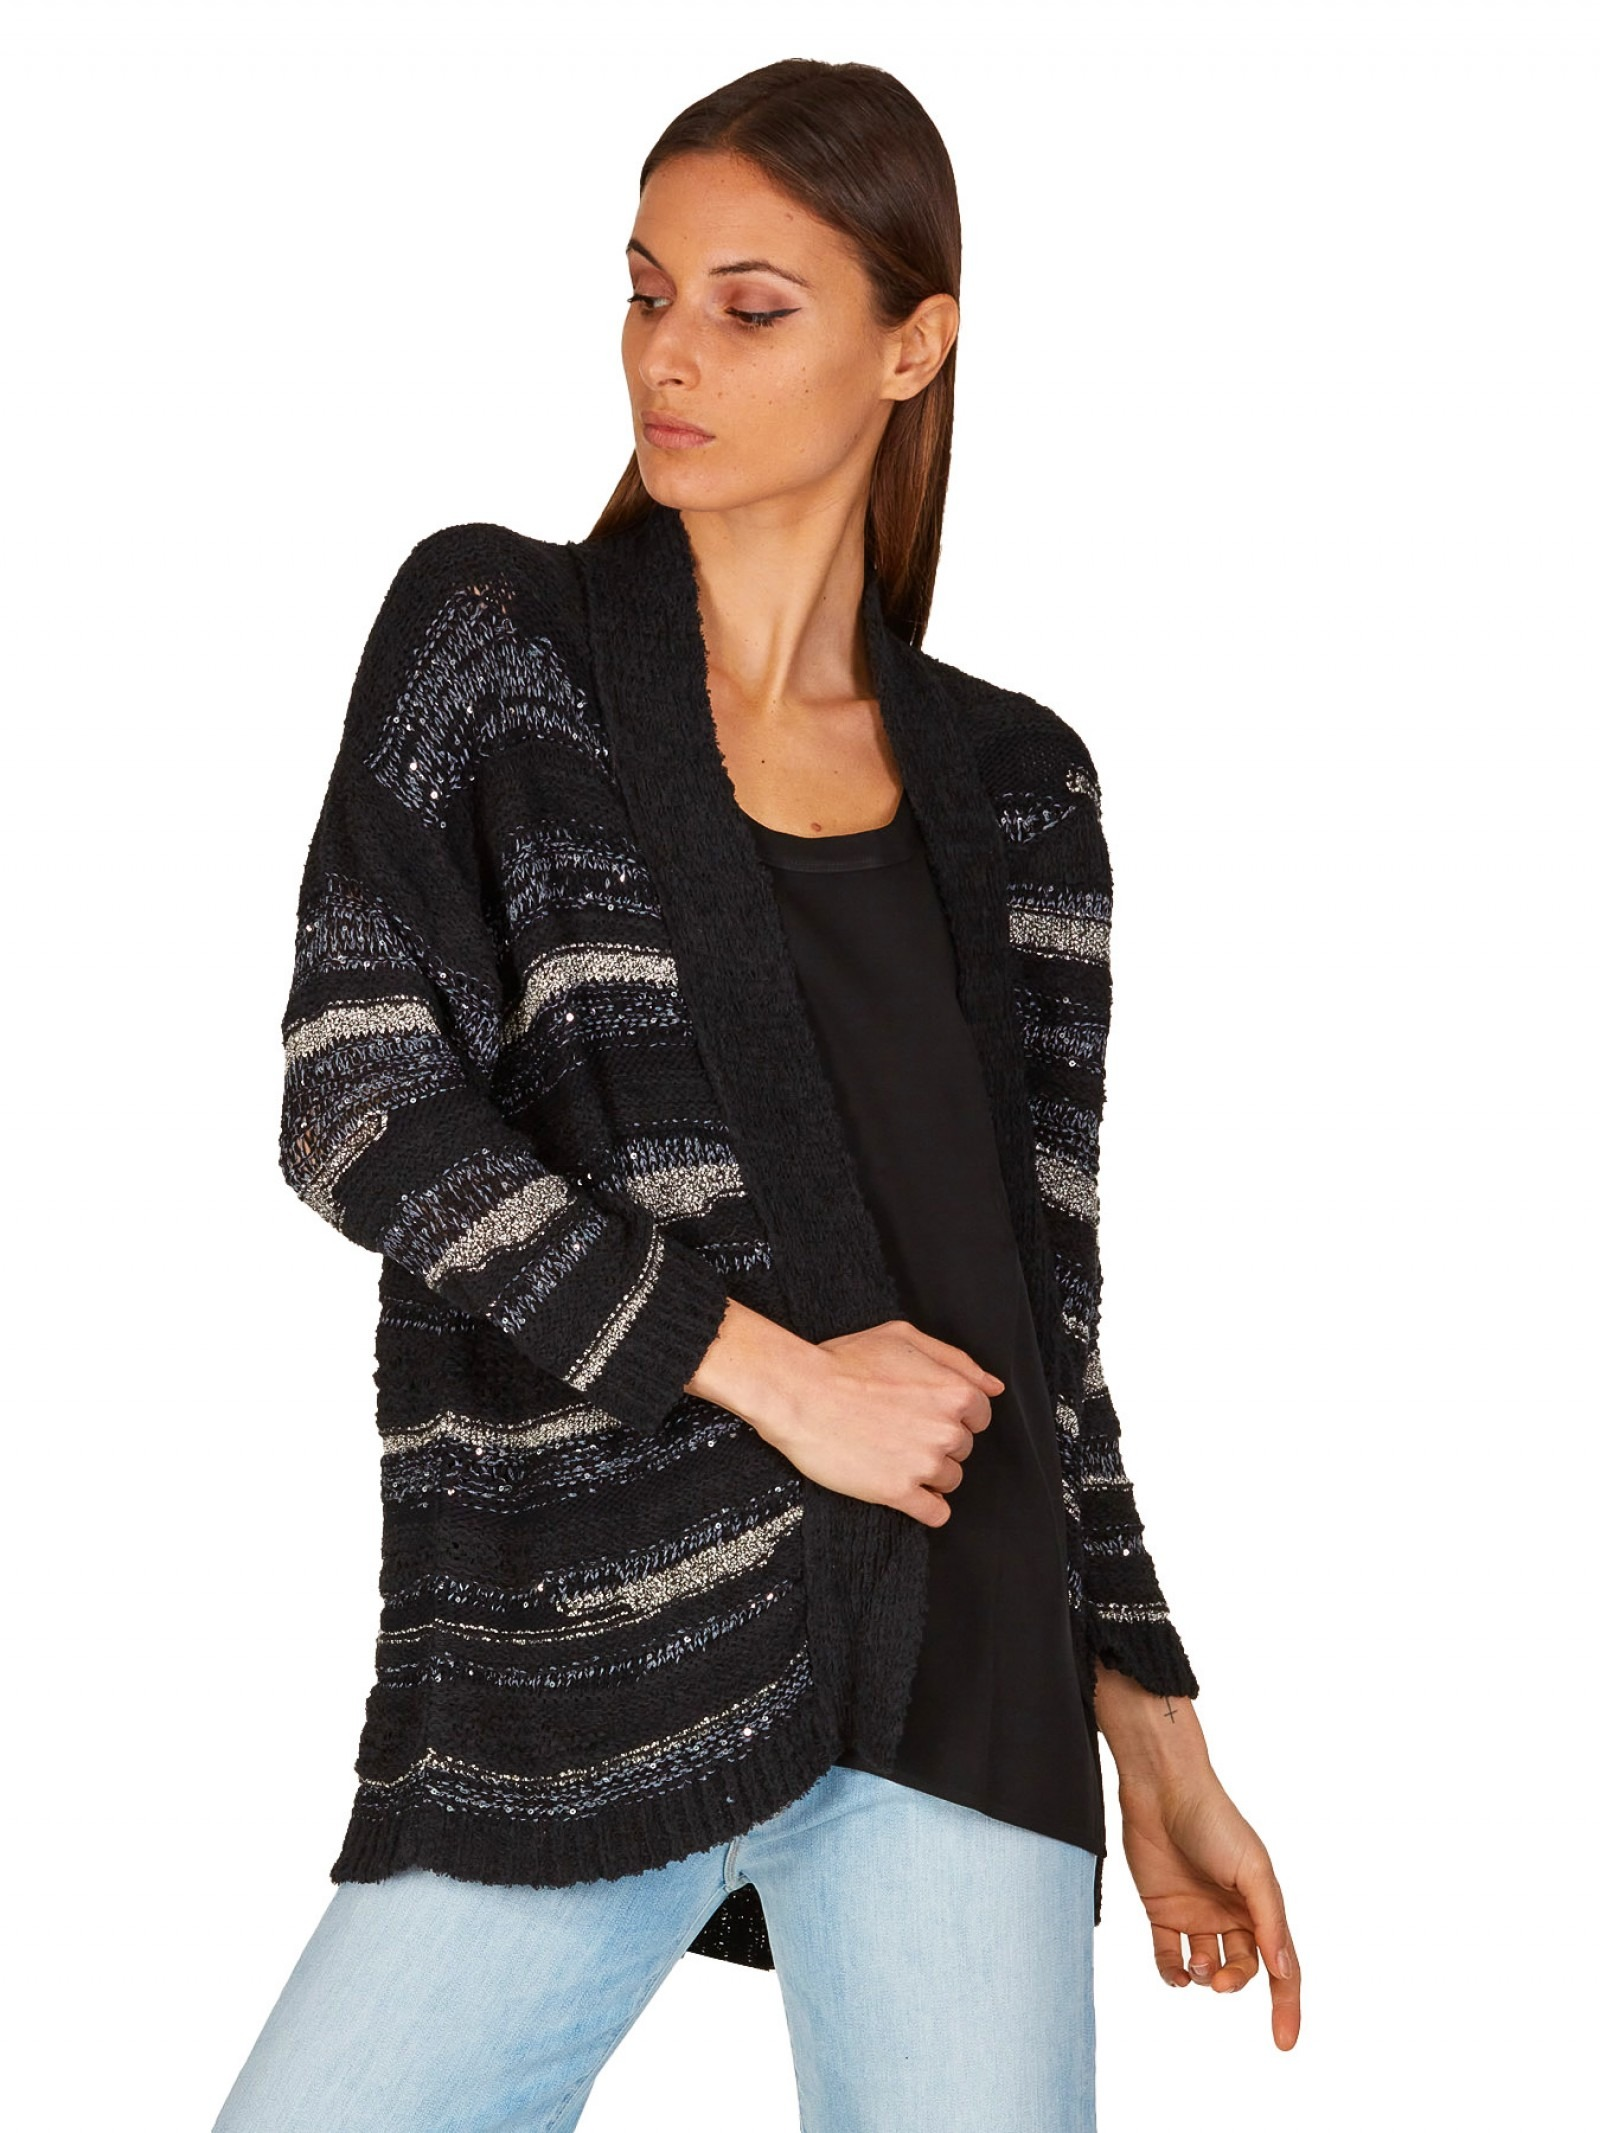 8pm - Cardigan con paillettes - E9021 - HOLLYWOOD-009